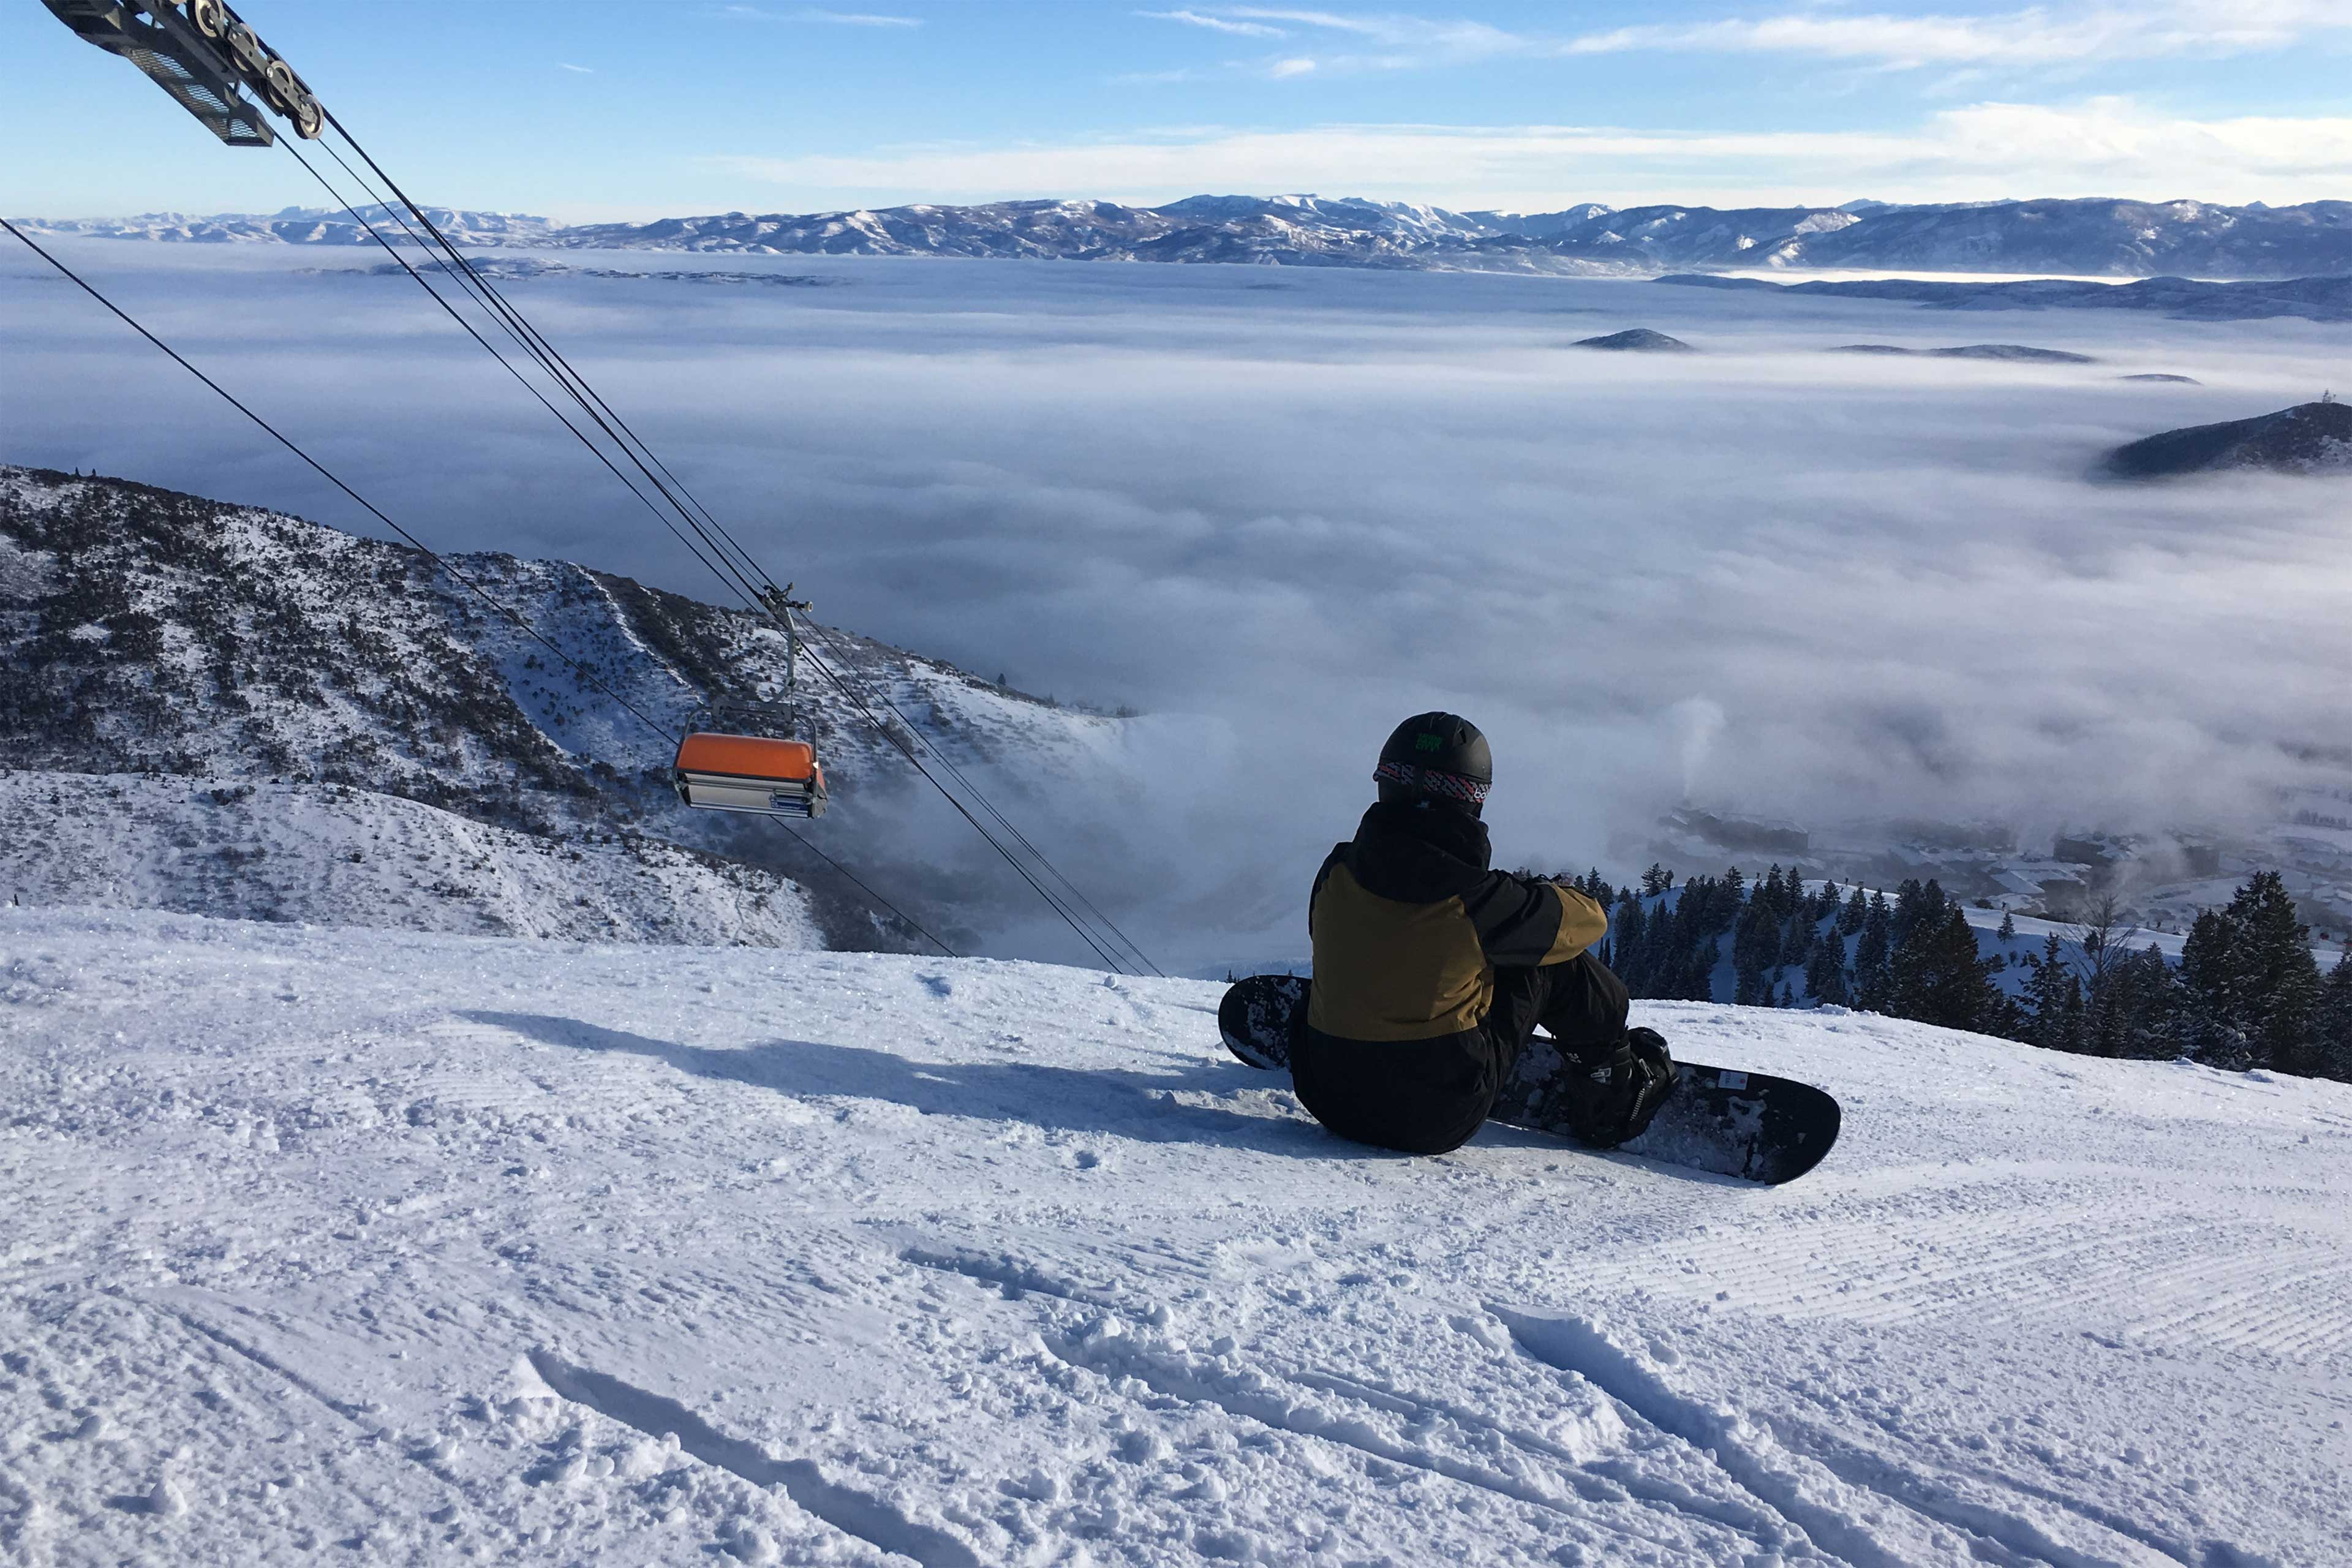 Morning groomers on the best snow on earth, with views of the Uinta Mountains!